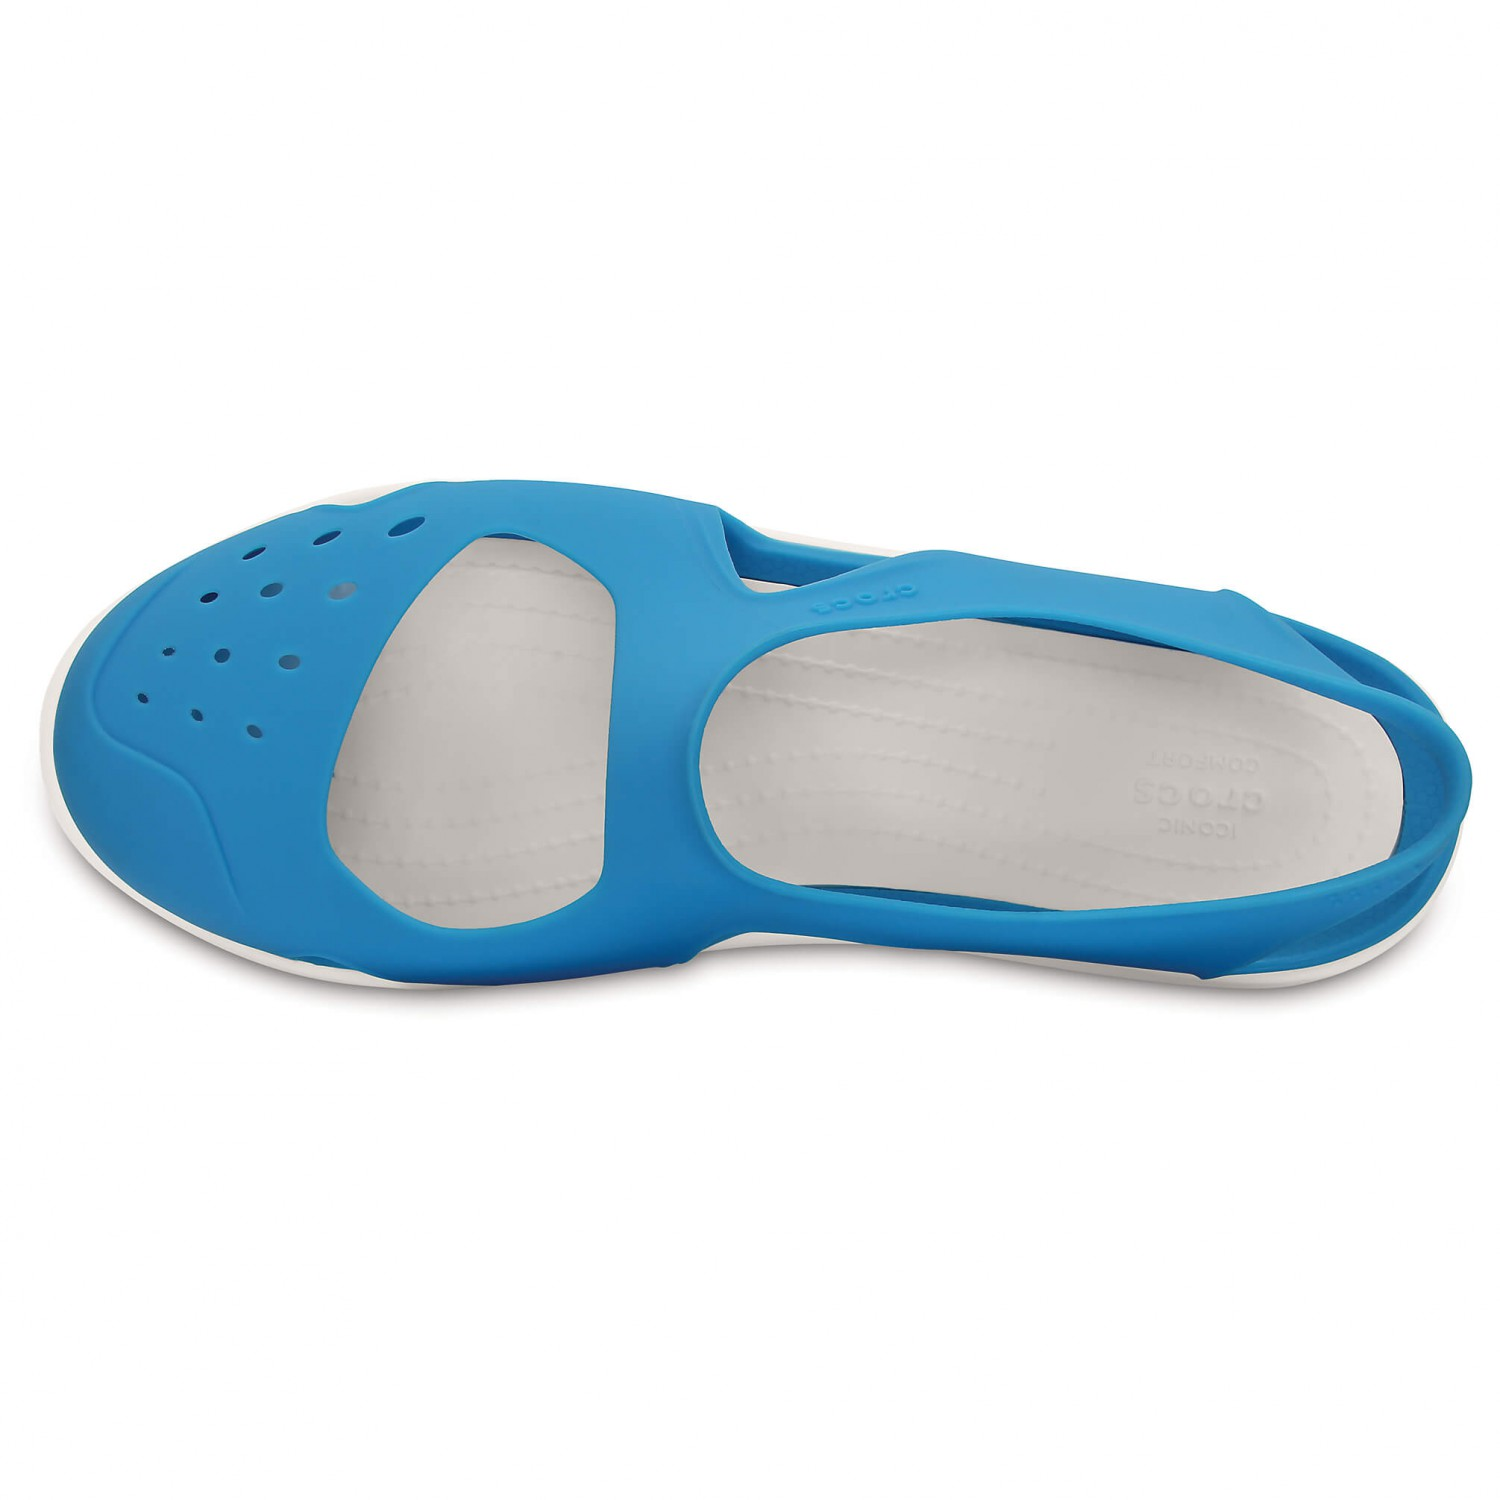 85cd2047 Crocs Swiftwater Wave - Sandals Kids | Buy online | Alpinetrek.co.uk